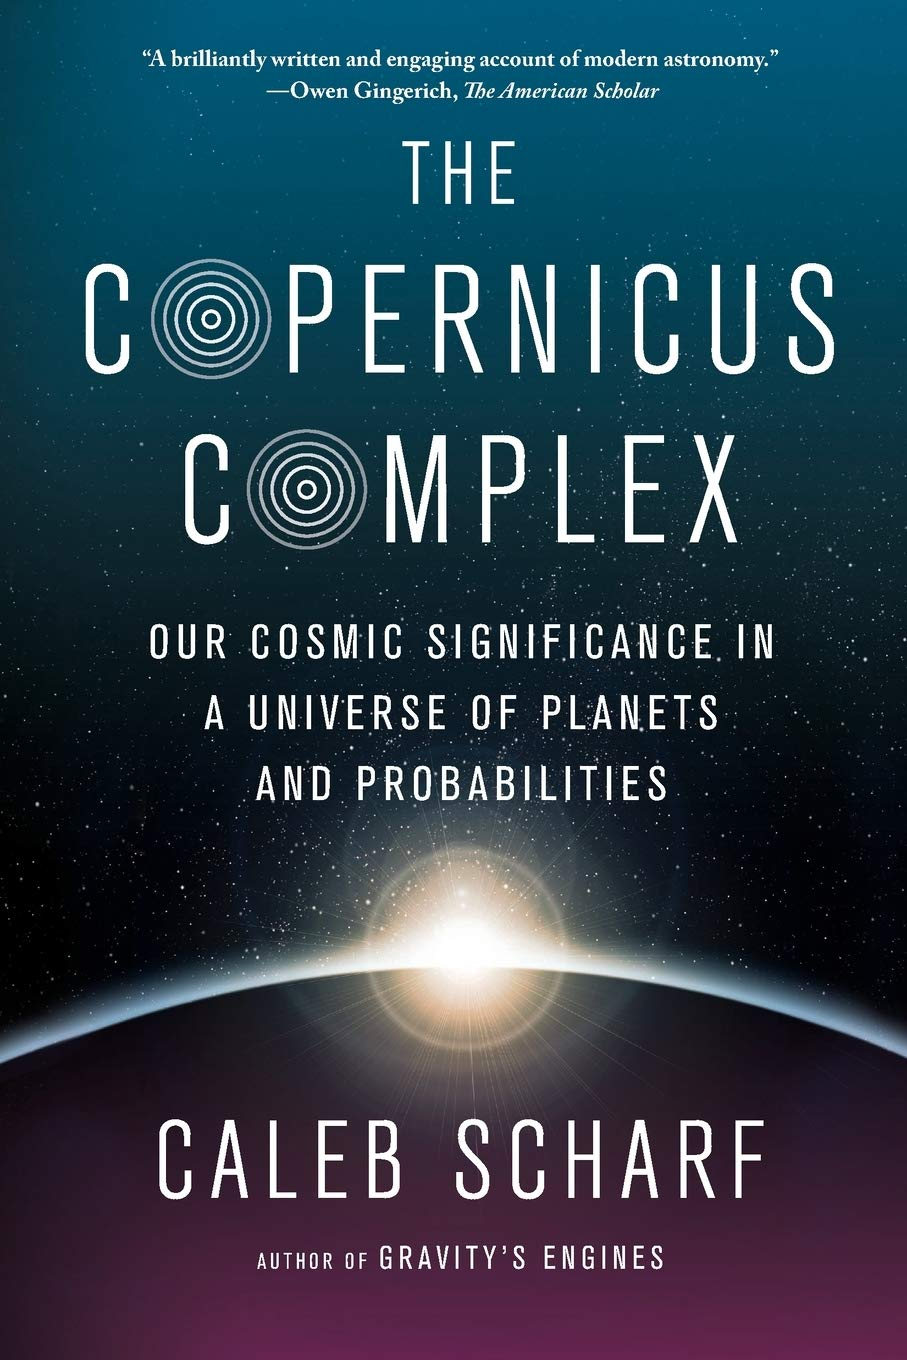 Image OfThe Copernicus Complex: Our Cosmic Significance In A Universe Of Planets And Probabilities